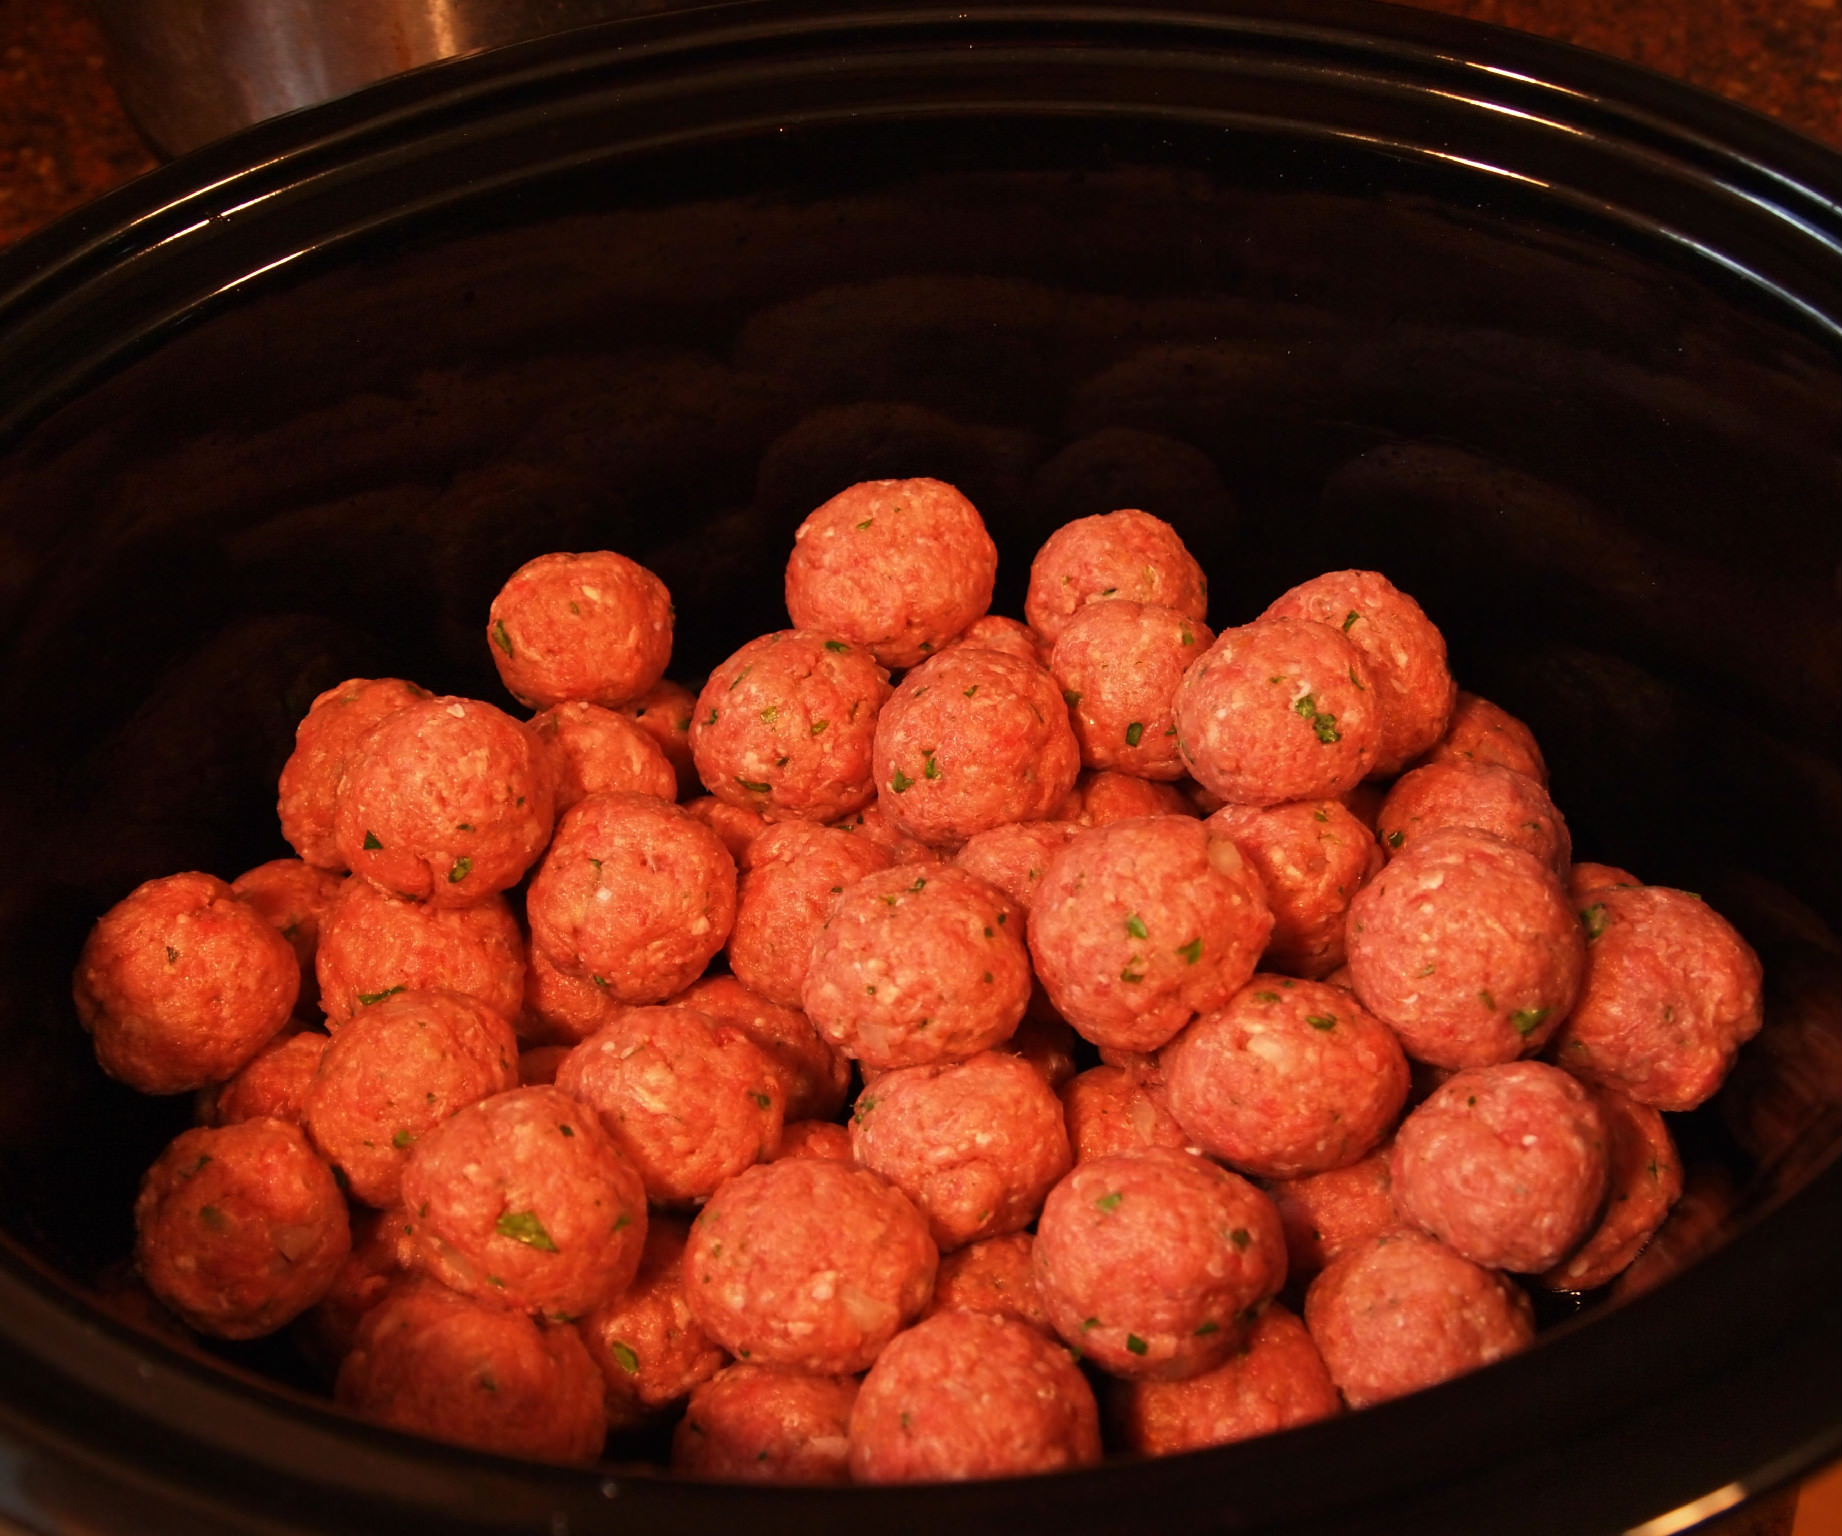 Game-Day-Meatballs are simmered all day in a crock pot until super tender and bathed in a flavorful sweet & spicy sauce made with grape jelly.